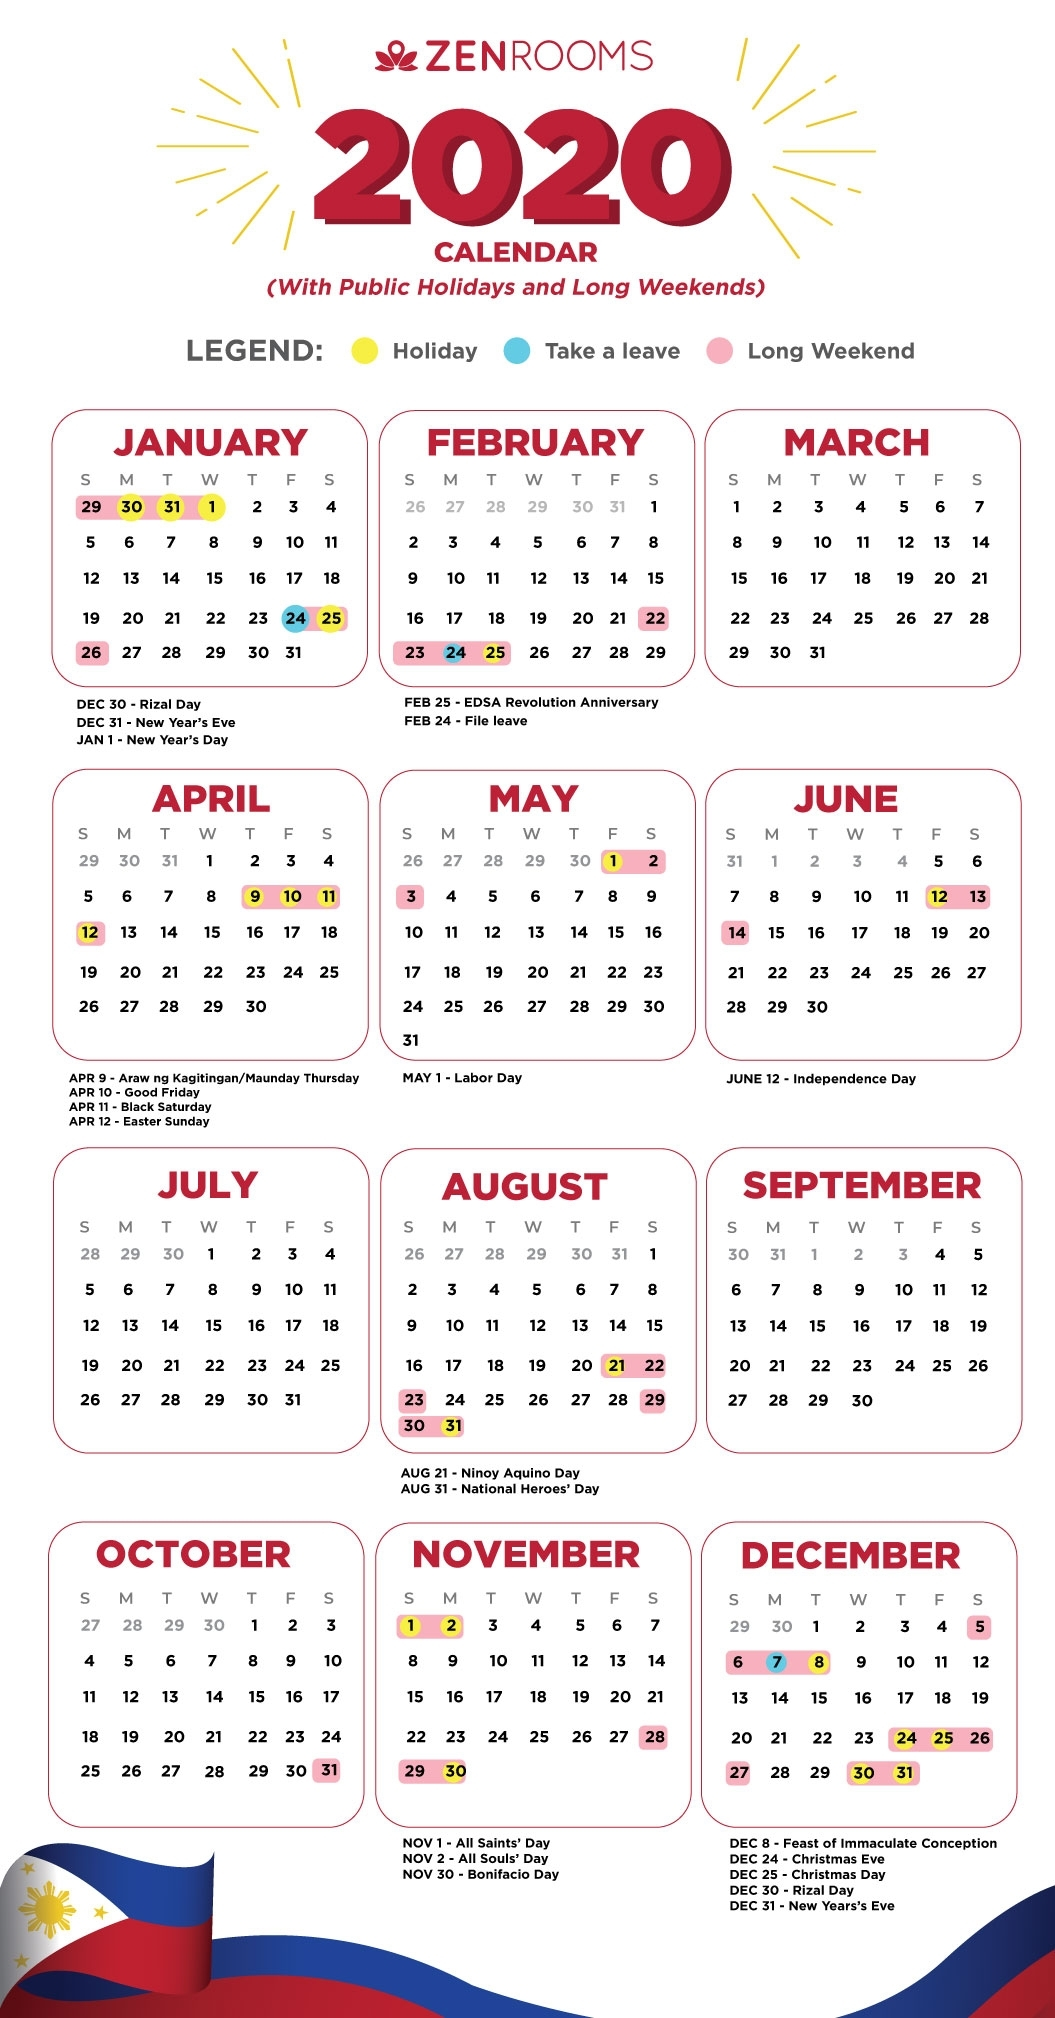 2020 Holiday Calendar Philippines: Travel Guide With Tips